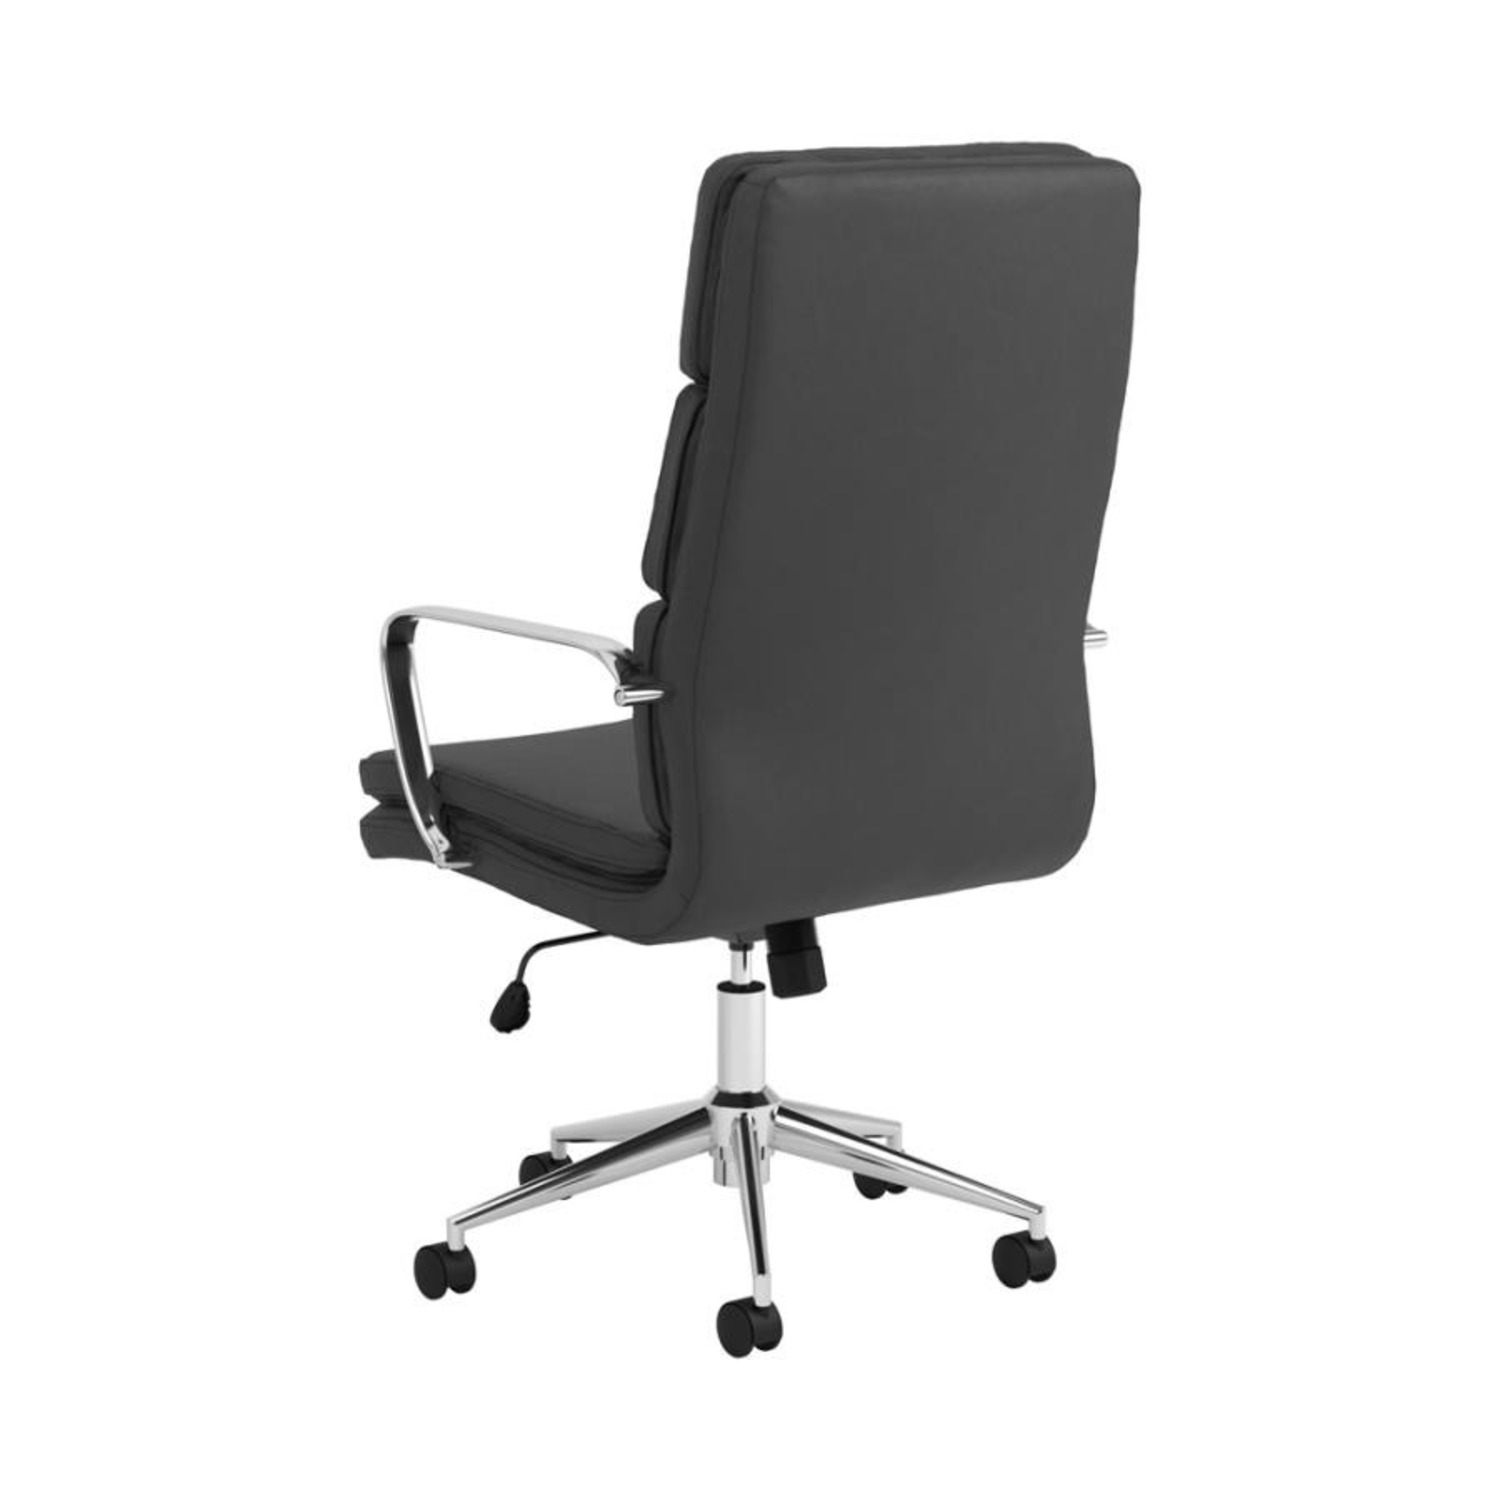 Office Chair In Black Cushion Leatherette Finish - image-3